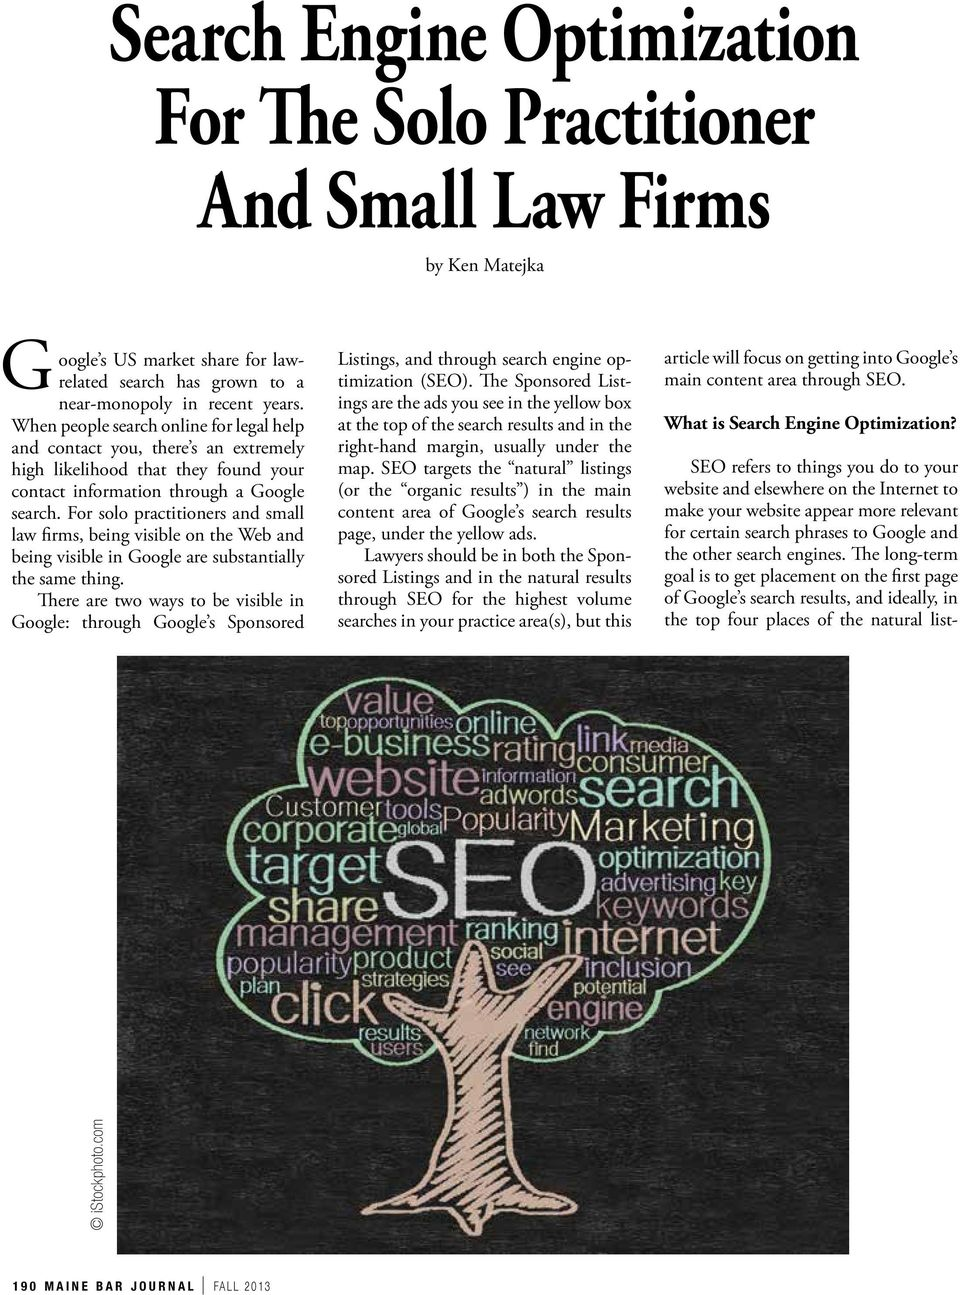 For solo practitioners and small law firms, being visible on the Web and being visible in Google are substantially the same thing.